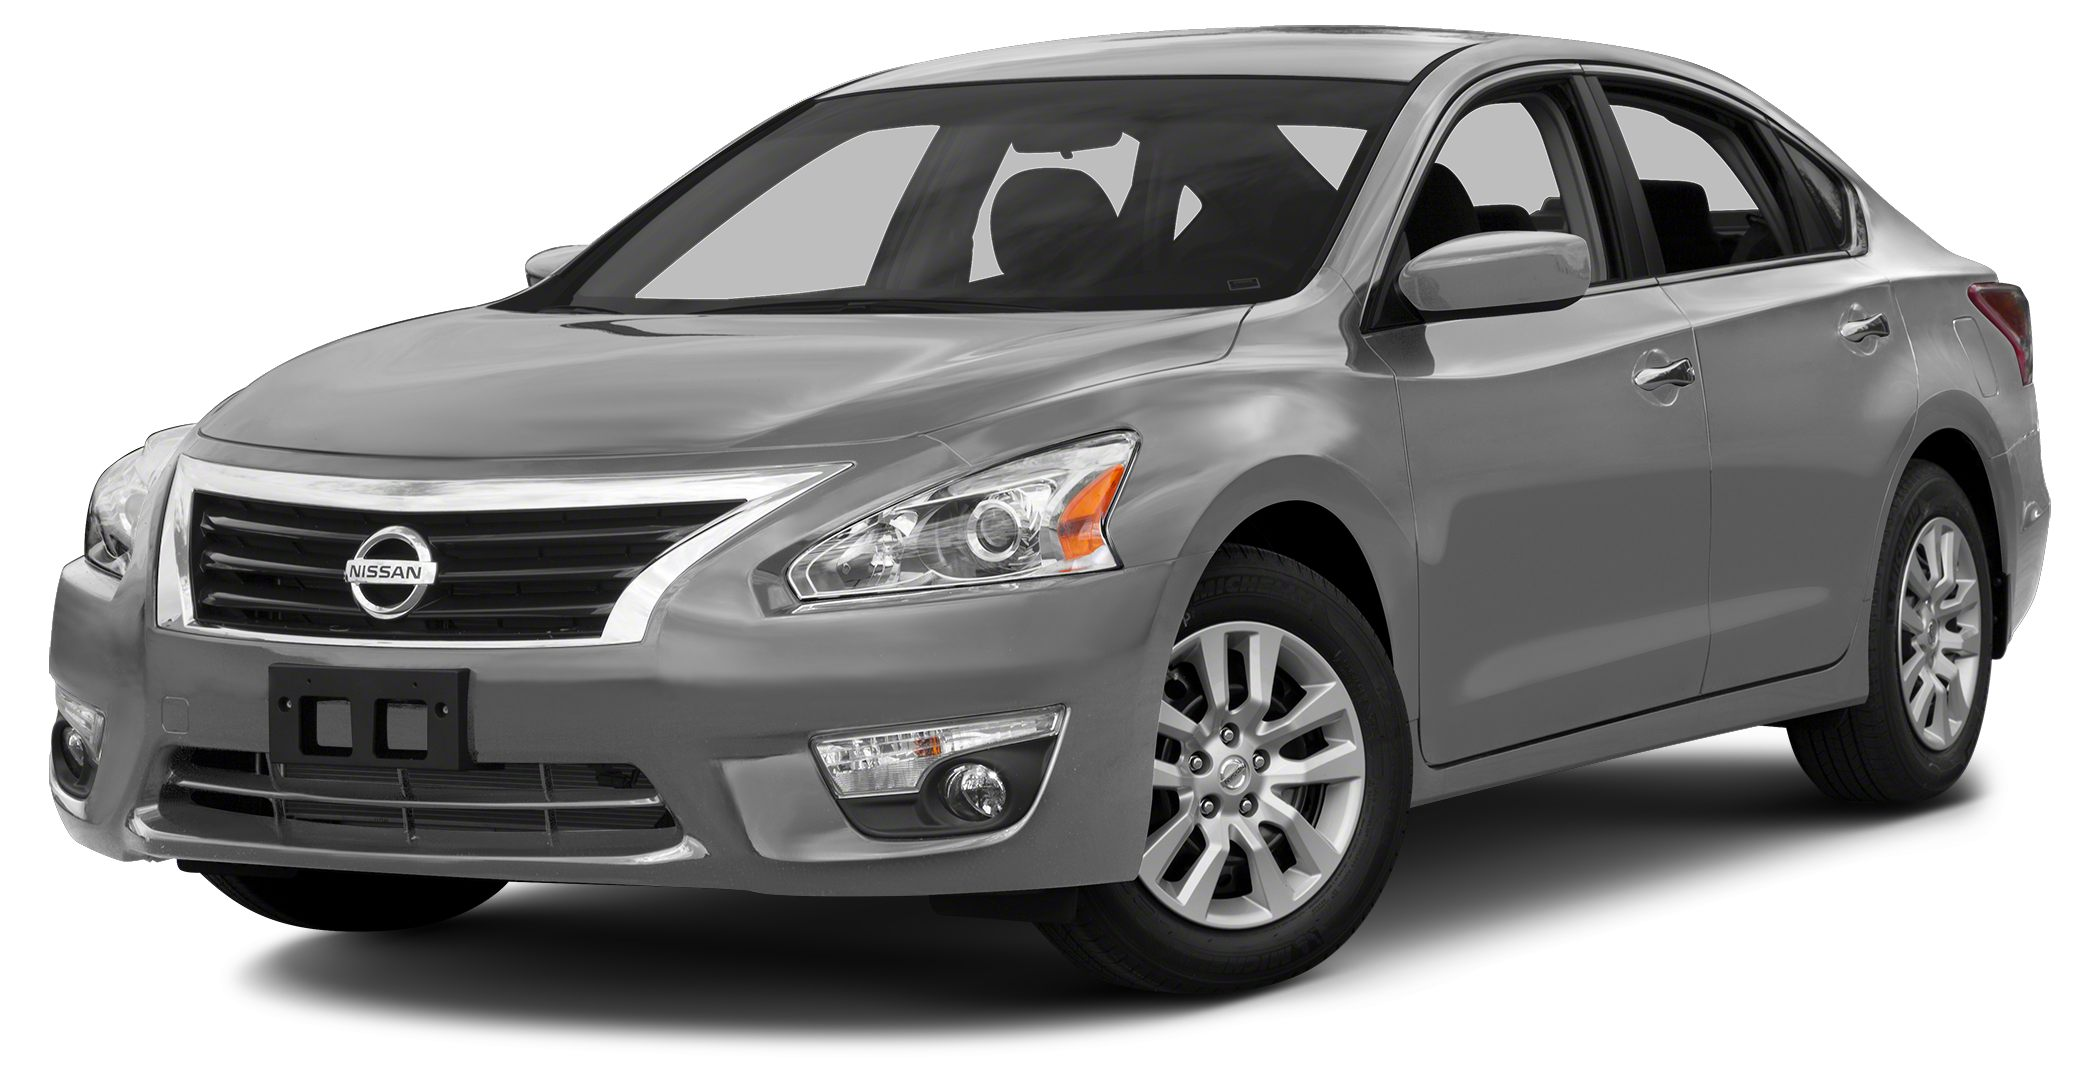 2015 Nissan Altima 25 S Miles 32736Color Brilliant Silver Stock U2236 VIN 1N4AL3AP2FN334721